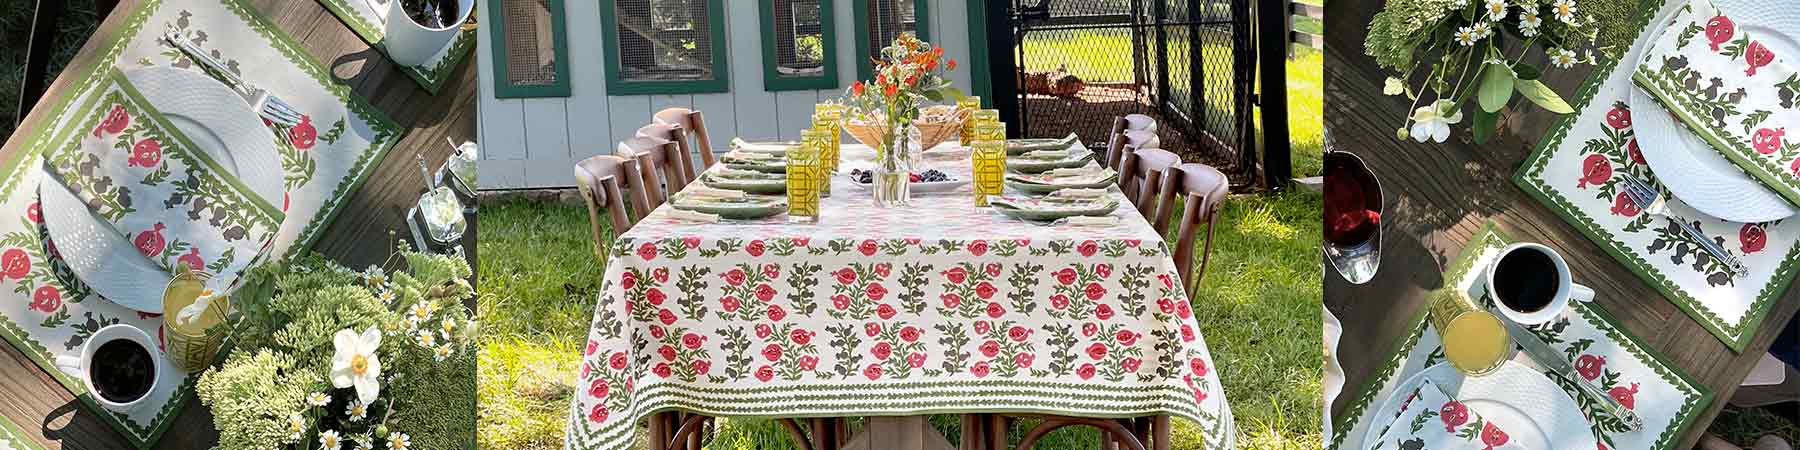 Fern Green and poppy pomegranates tablecloth in front of the chicken coop